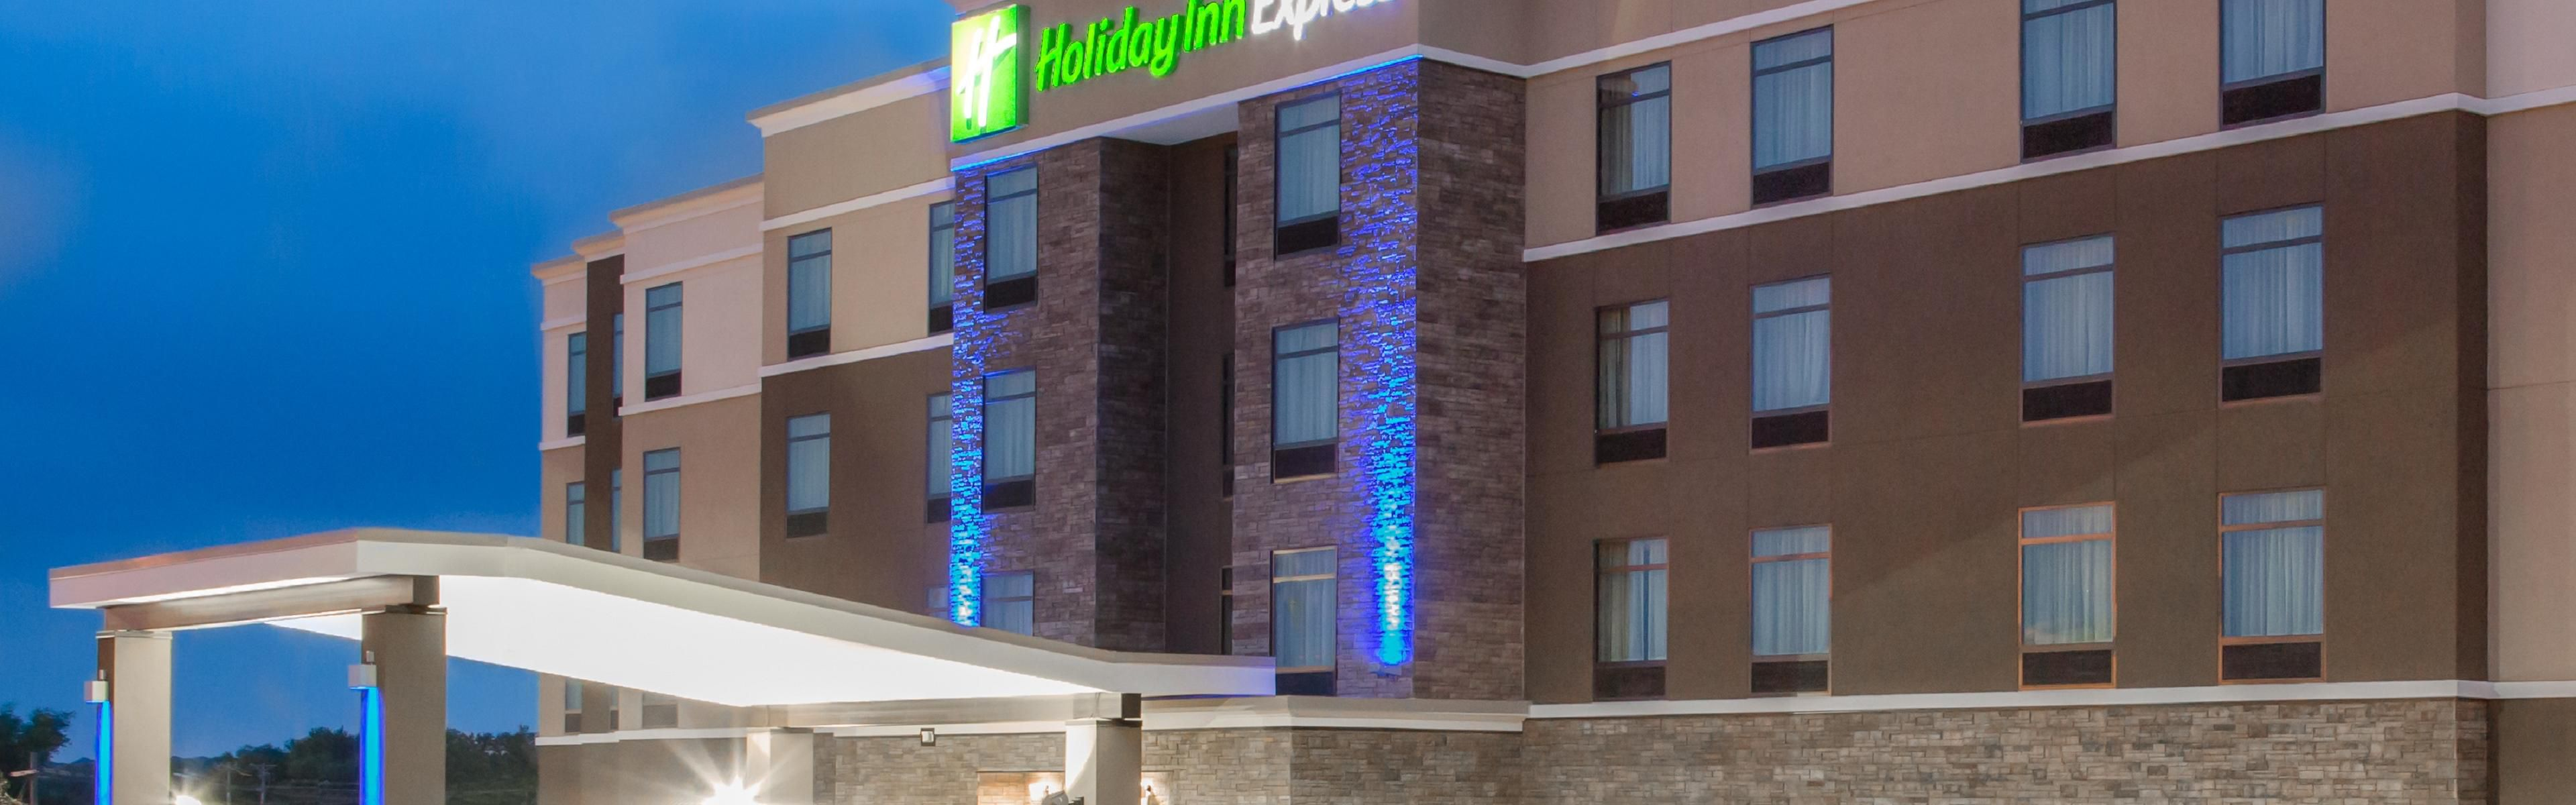 Holiday Inn Express Moline - Quad Cities image 0